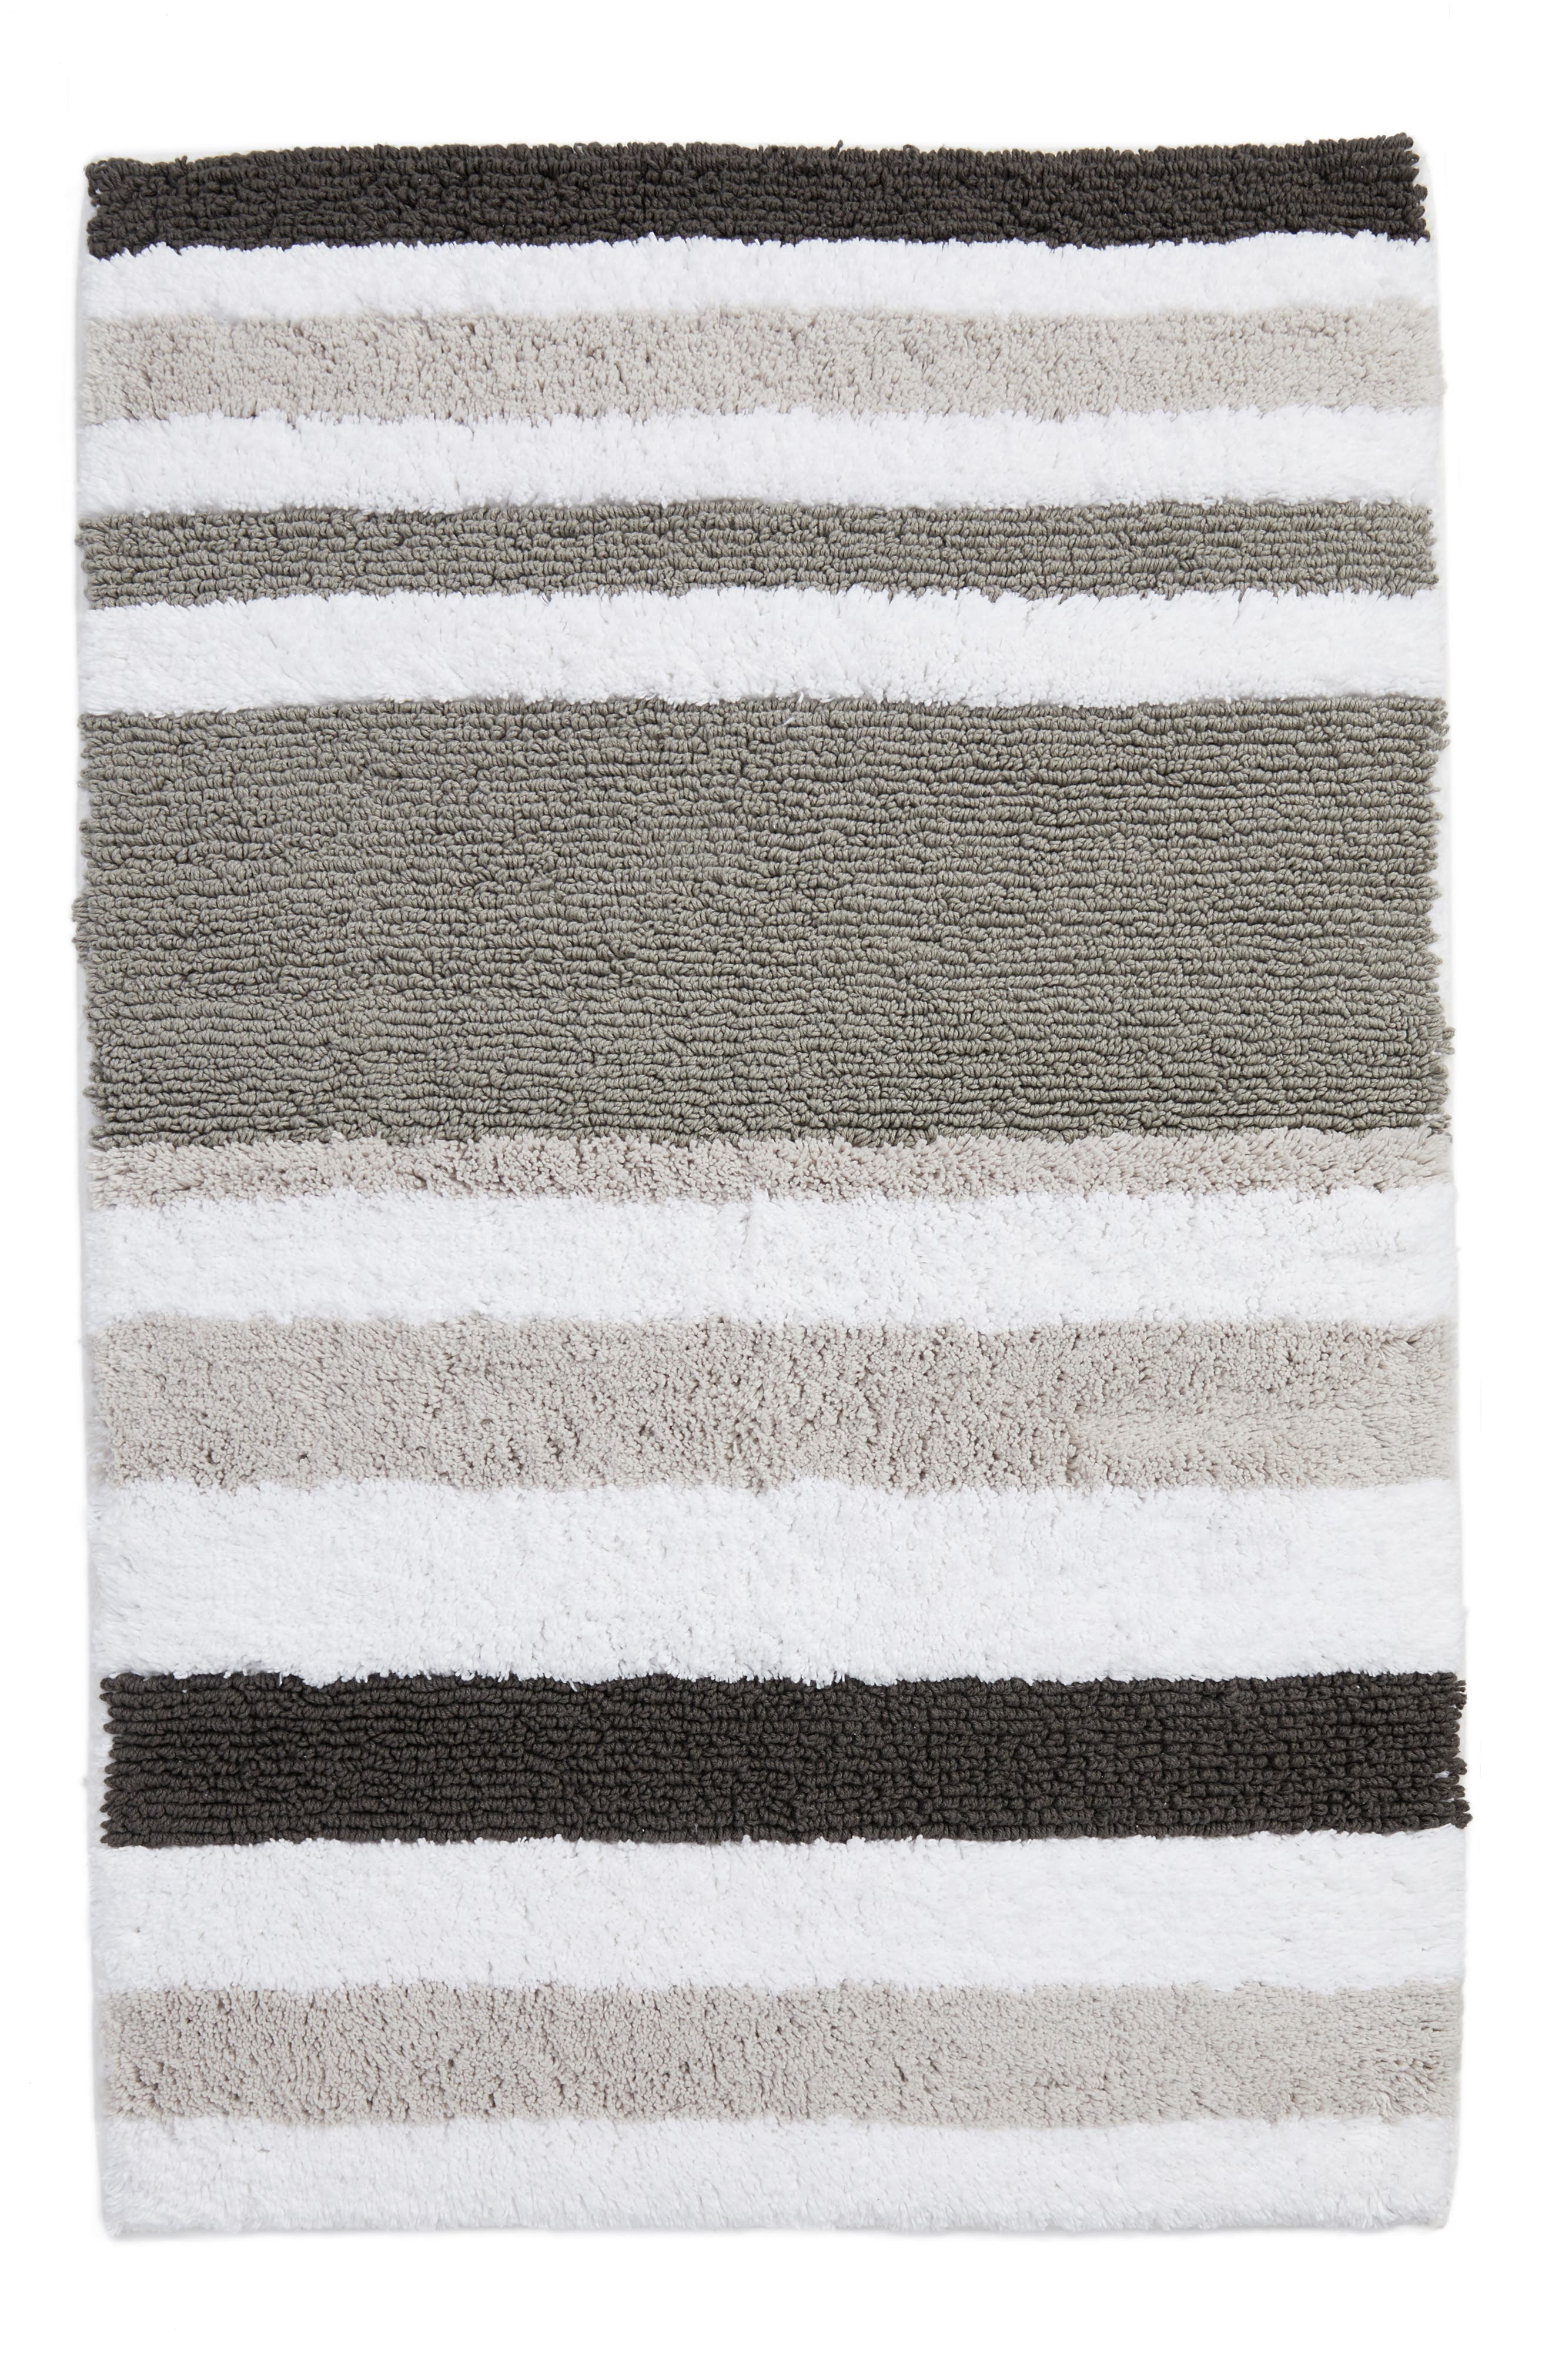 NORDSTROM AT HOME, Stripe Rug, Main thumbnail 1, color, 020